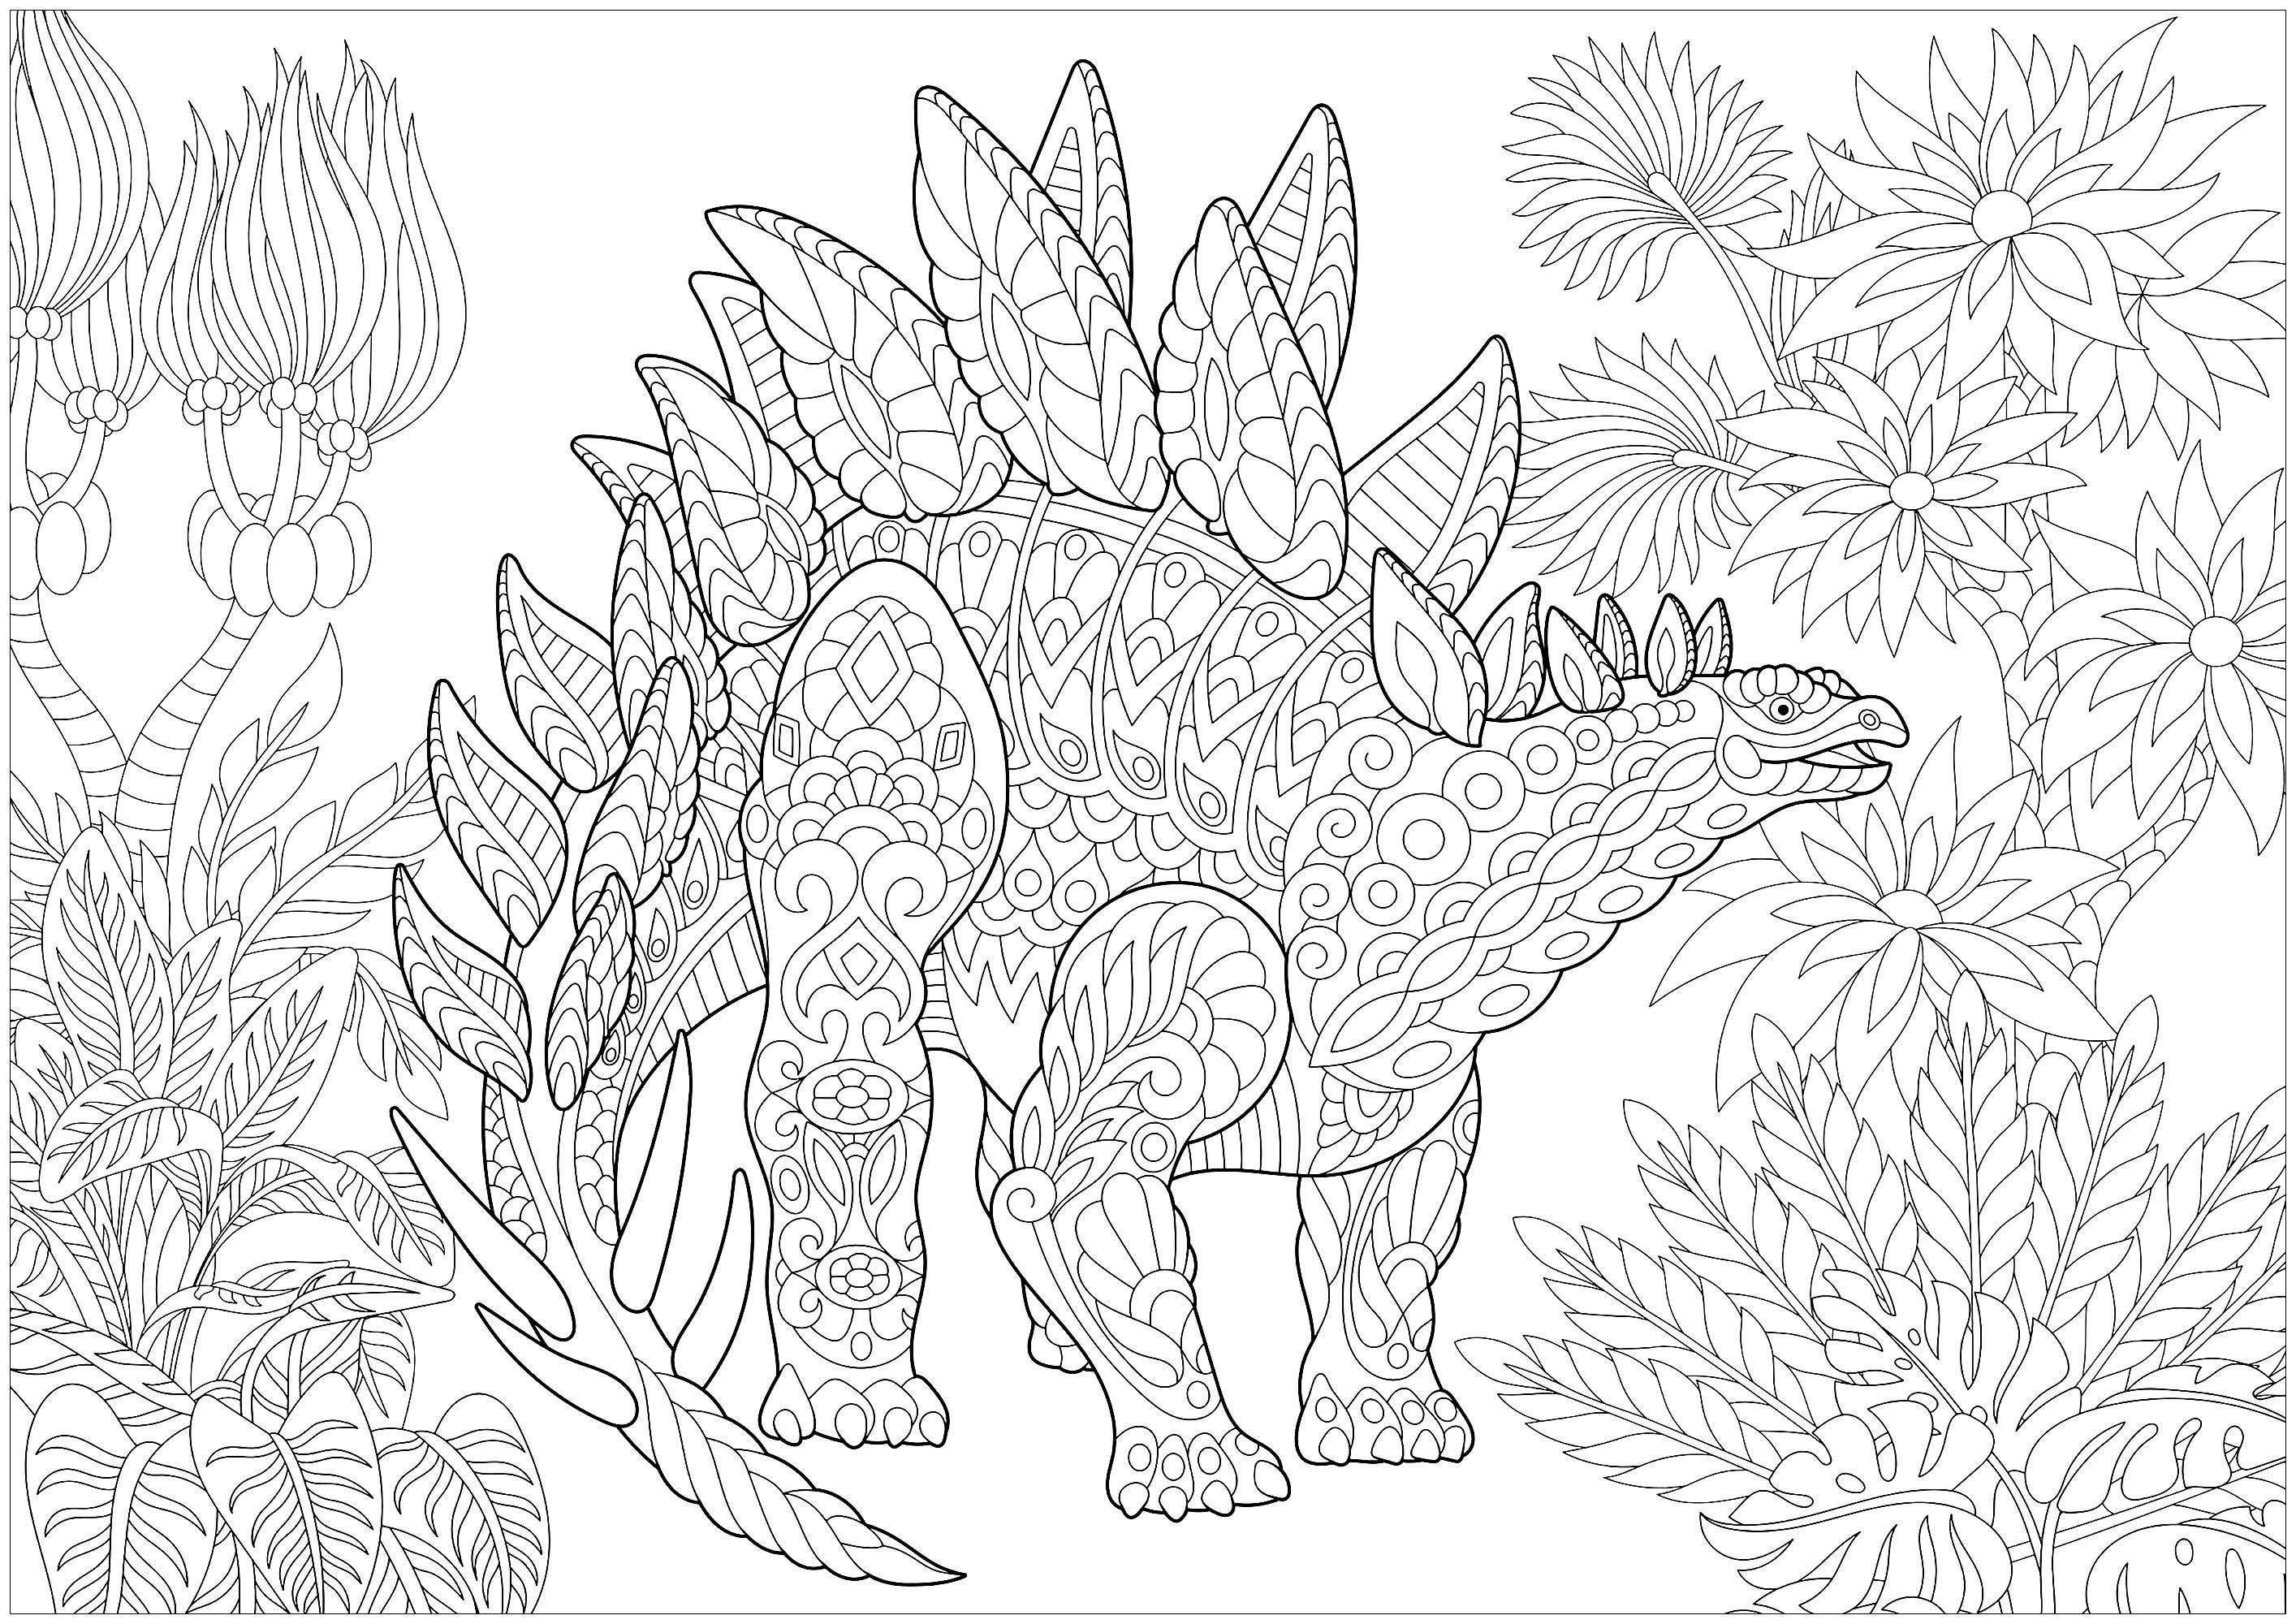 Stegosaurus Dinosaurs Coloring Pages for Adults Just